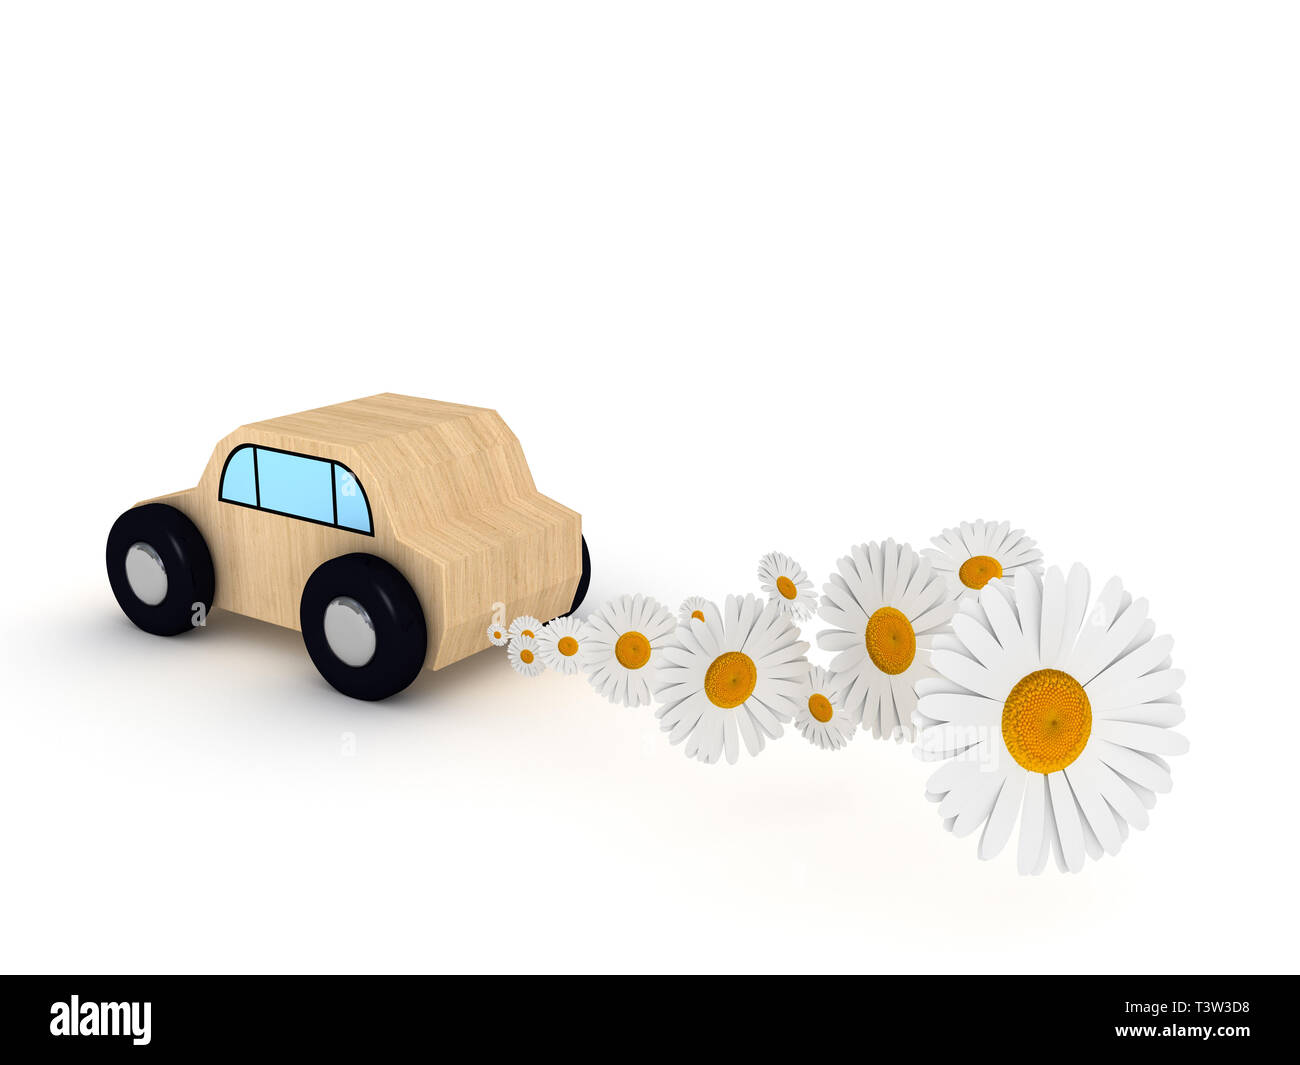 Car toy on white background with daisy. - Stock Image